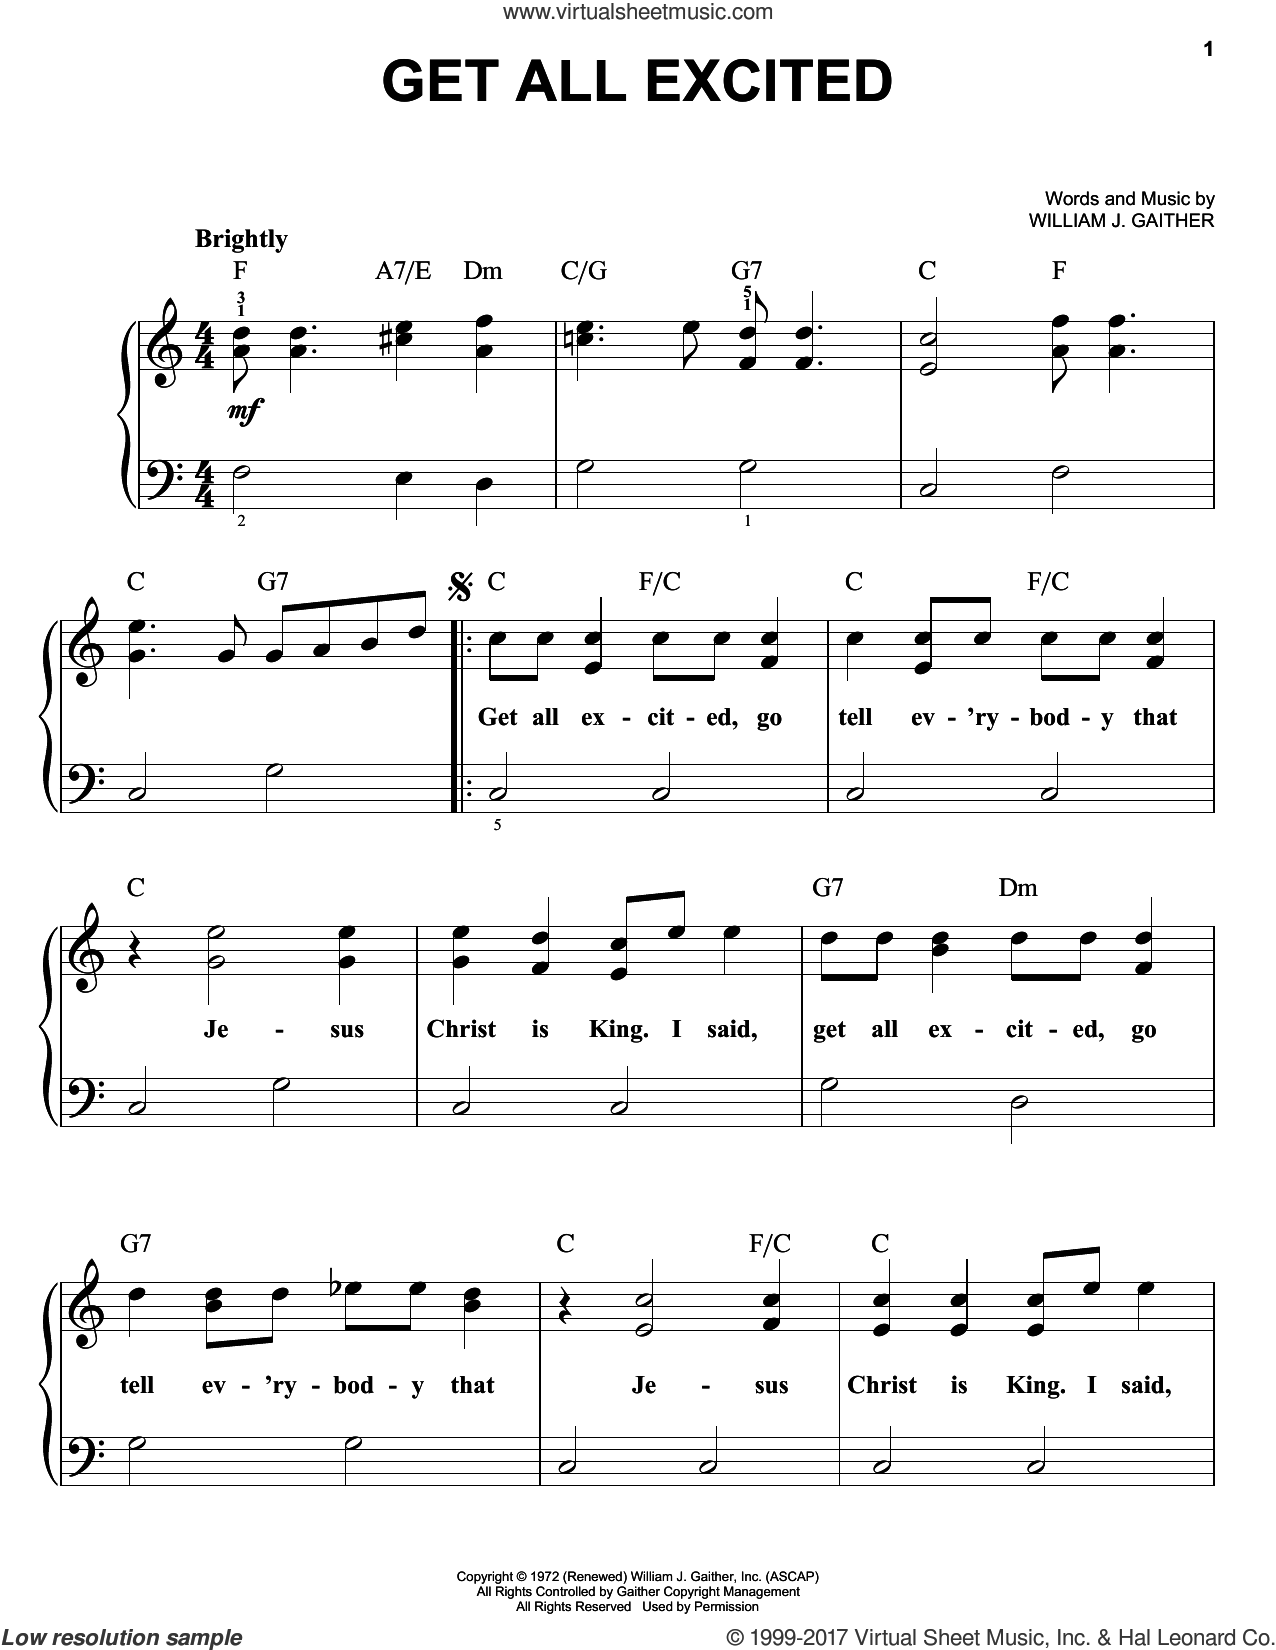 Get All Excited sheet music for piano solo by William J. Gaither, easy skill level